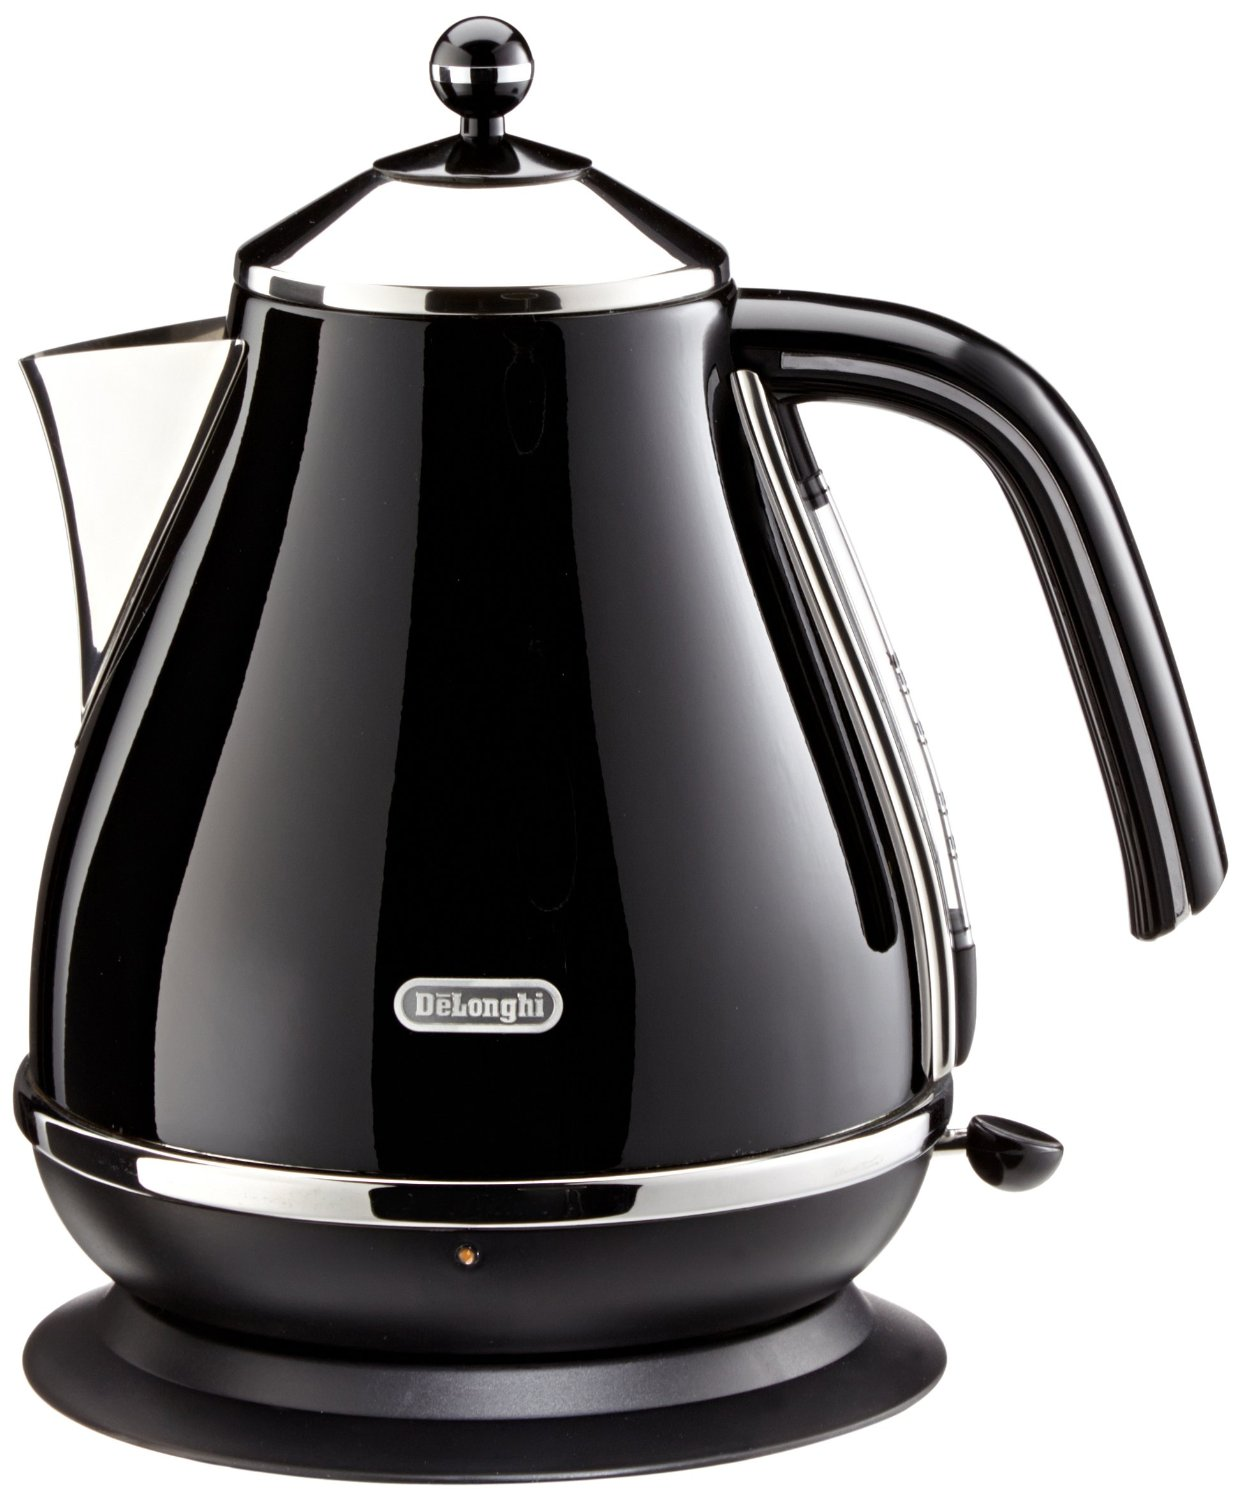 Delonghi - 1.7L Icona Kettle - Black